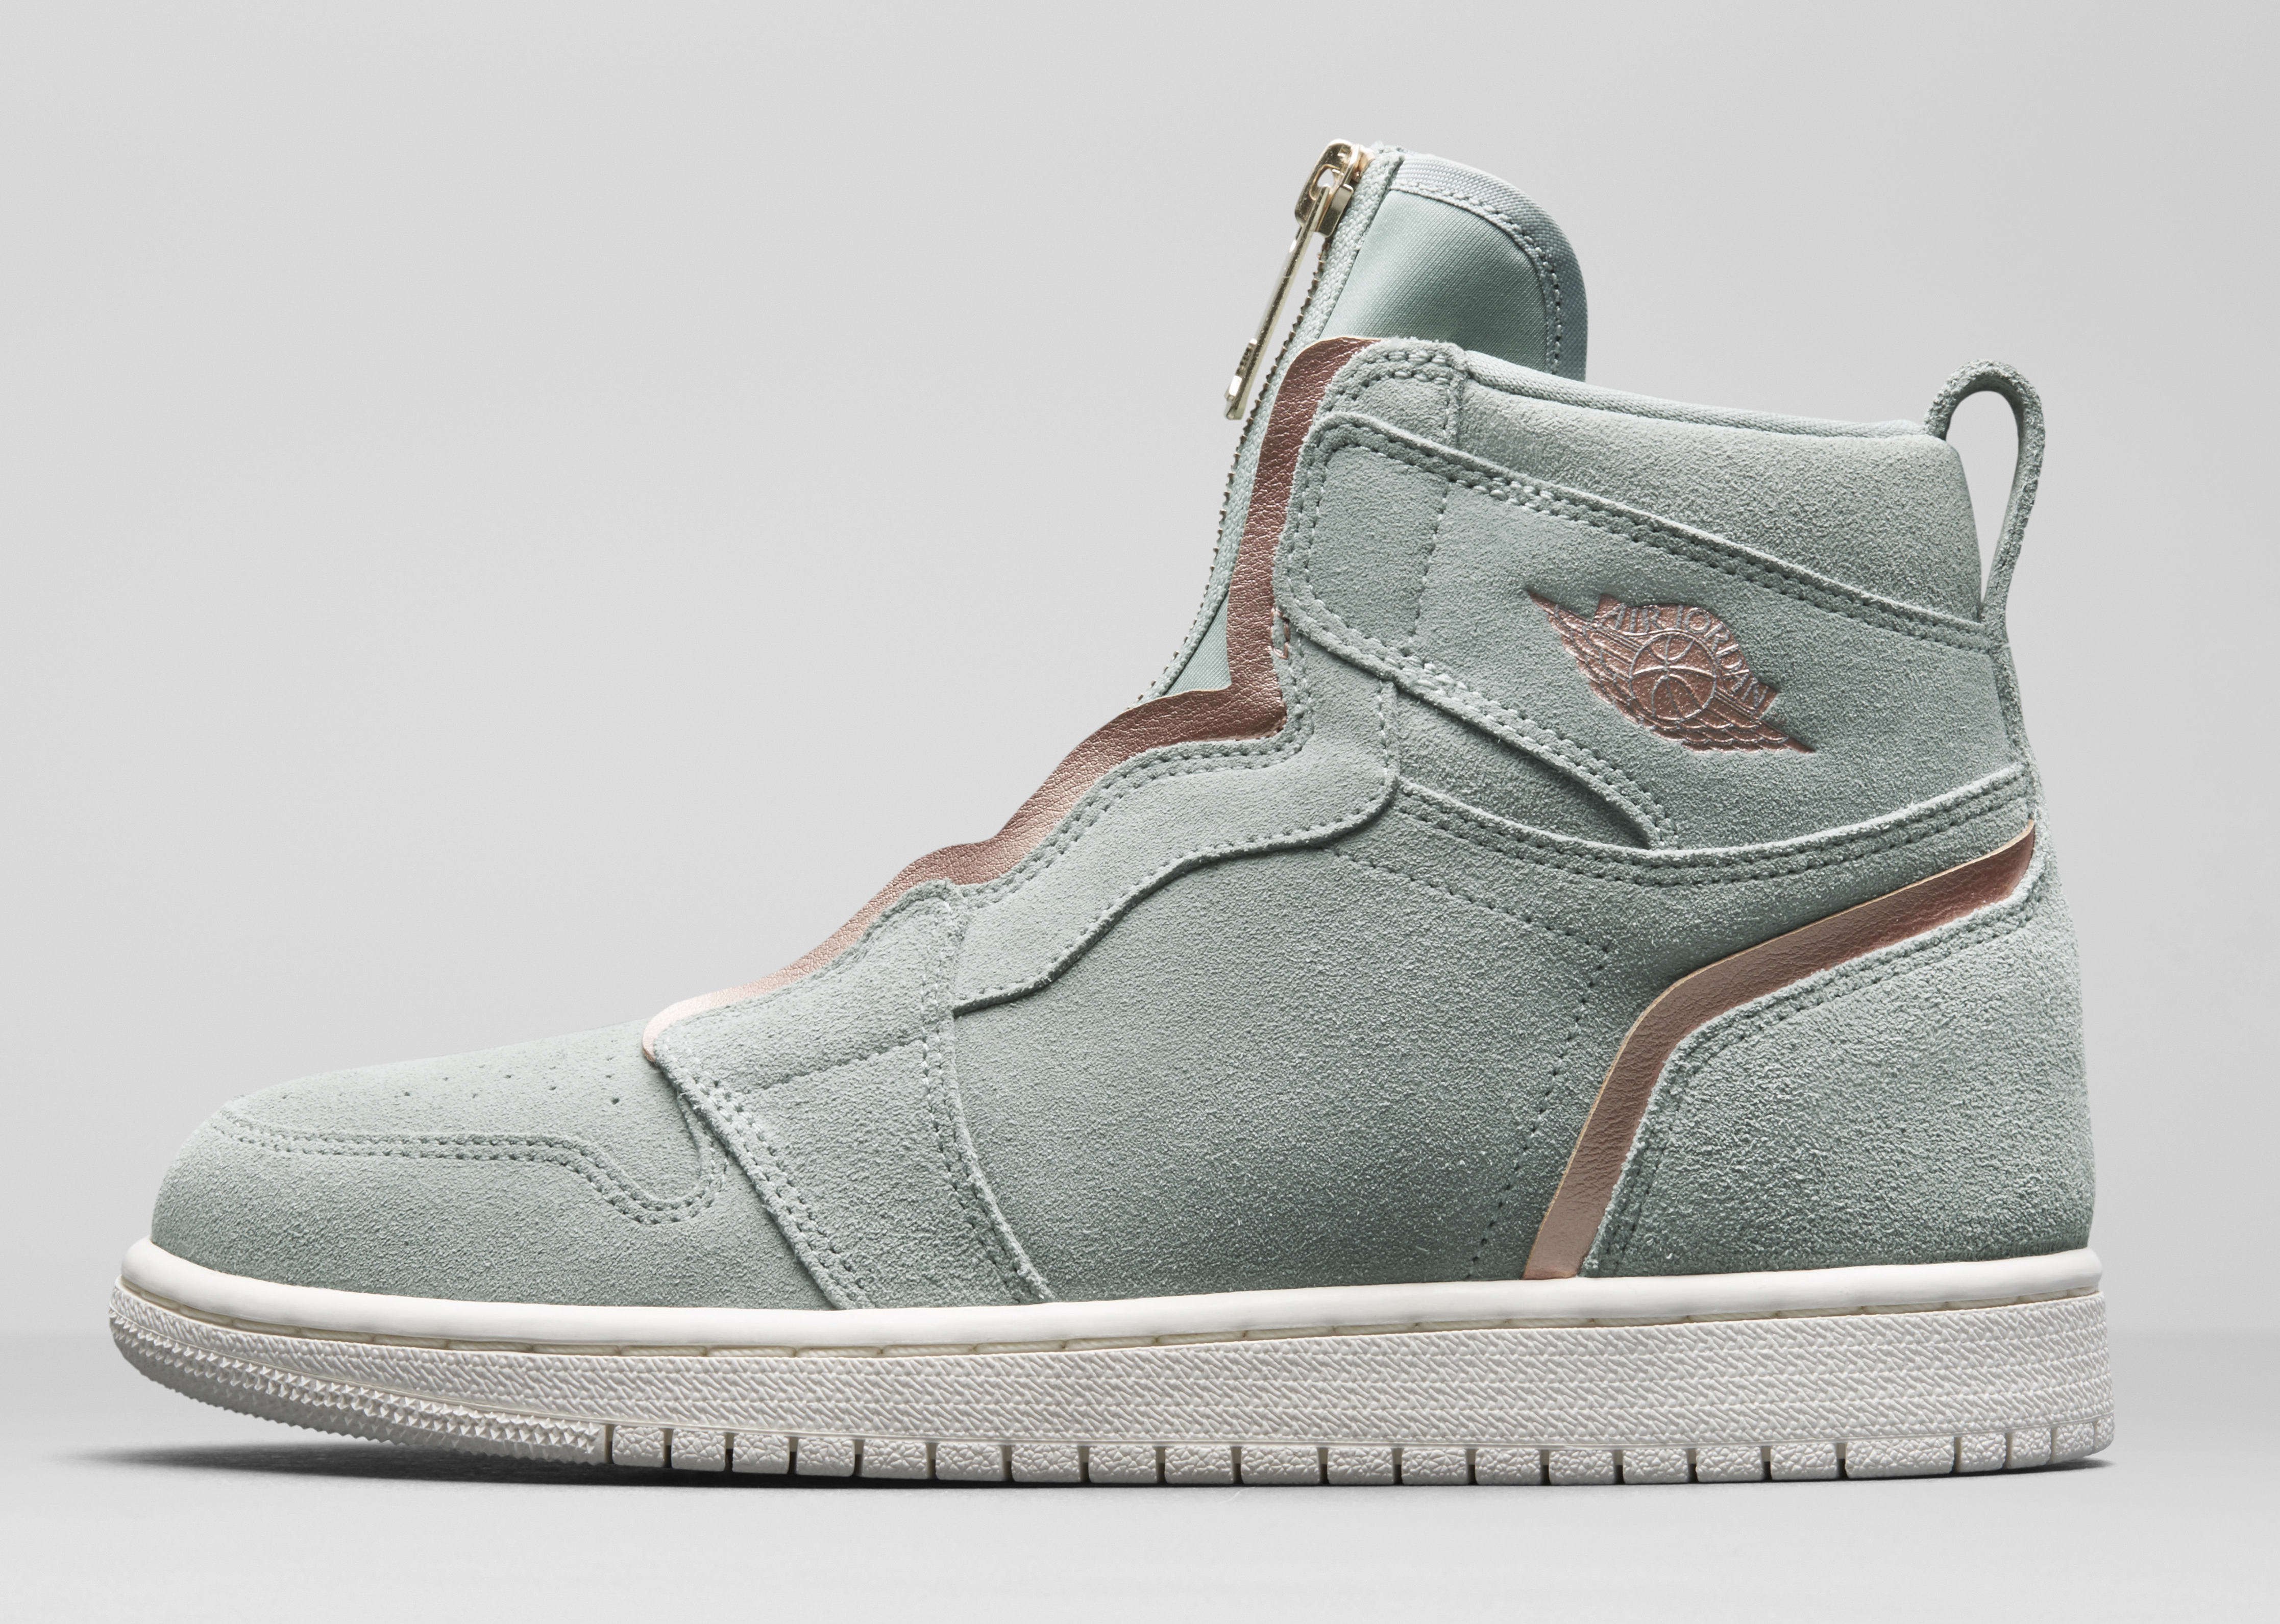 best sneakers ed7f6 bacce Jordan Brand Summer 2018 Women's Lineup | Sole Collector